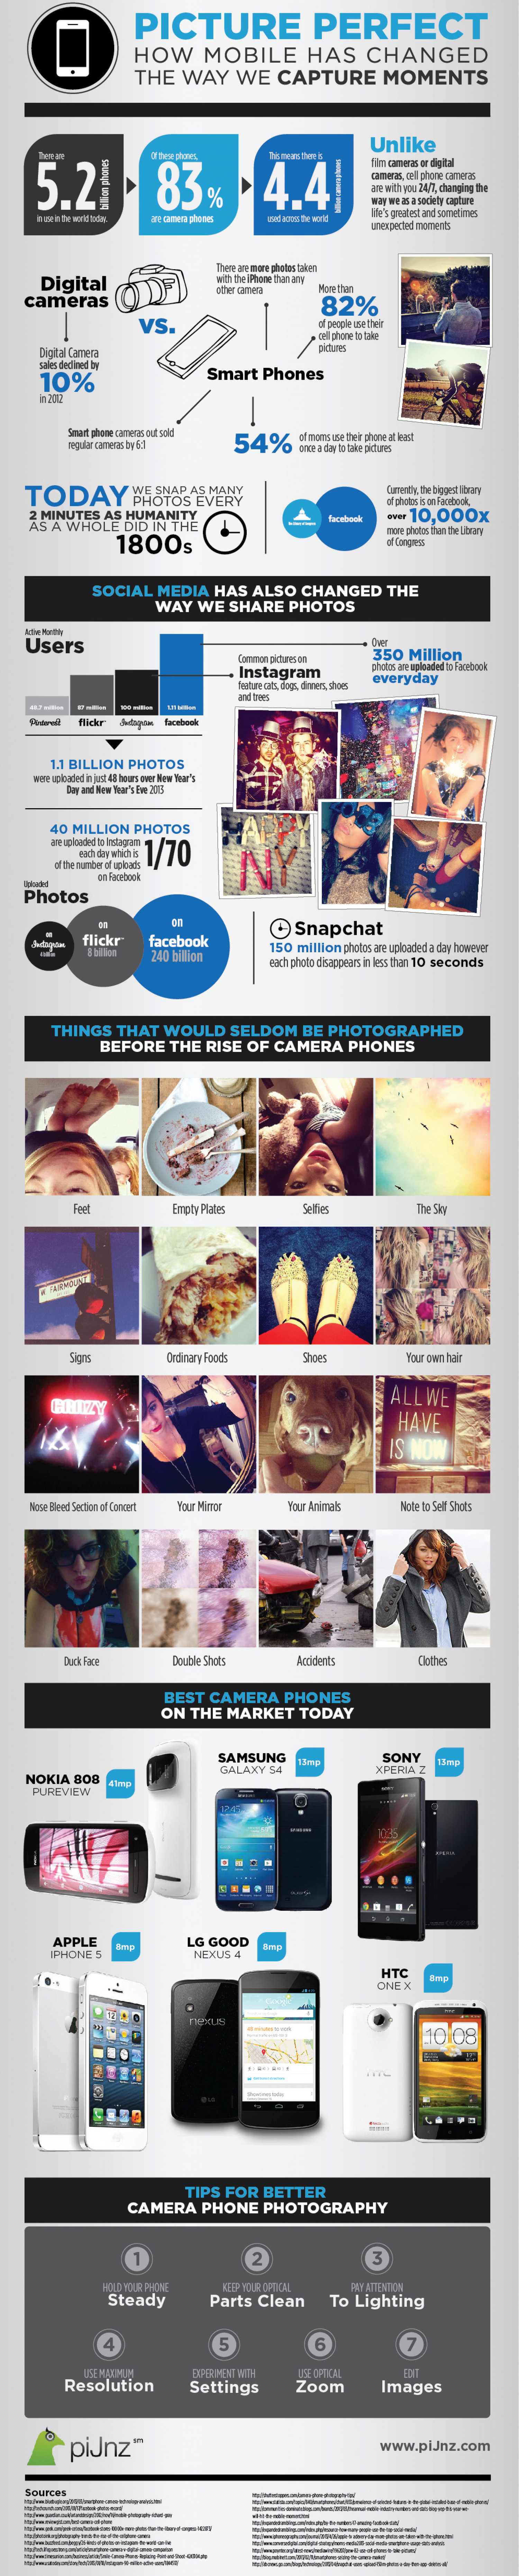 Picture Perfect - How Mobile Has Changed the Way We Capture Moments  Infographic